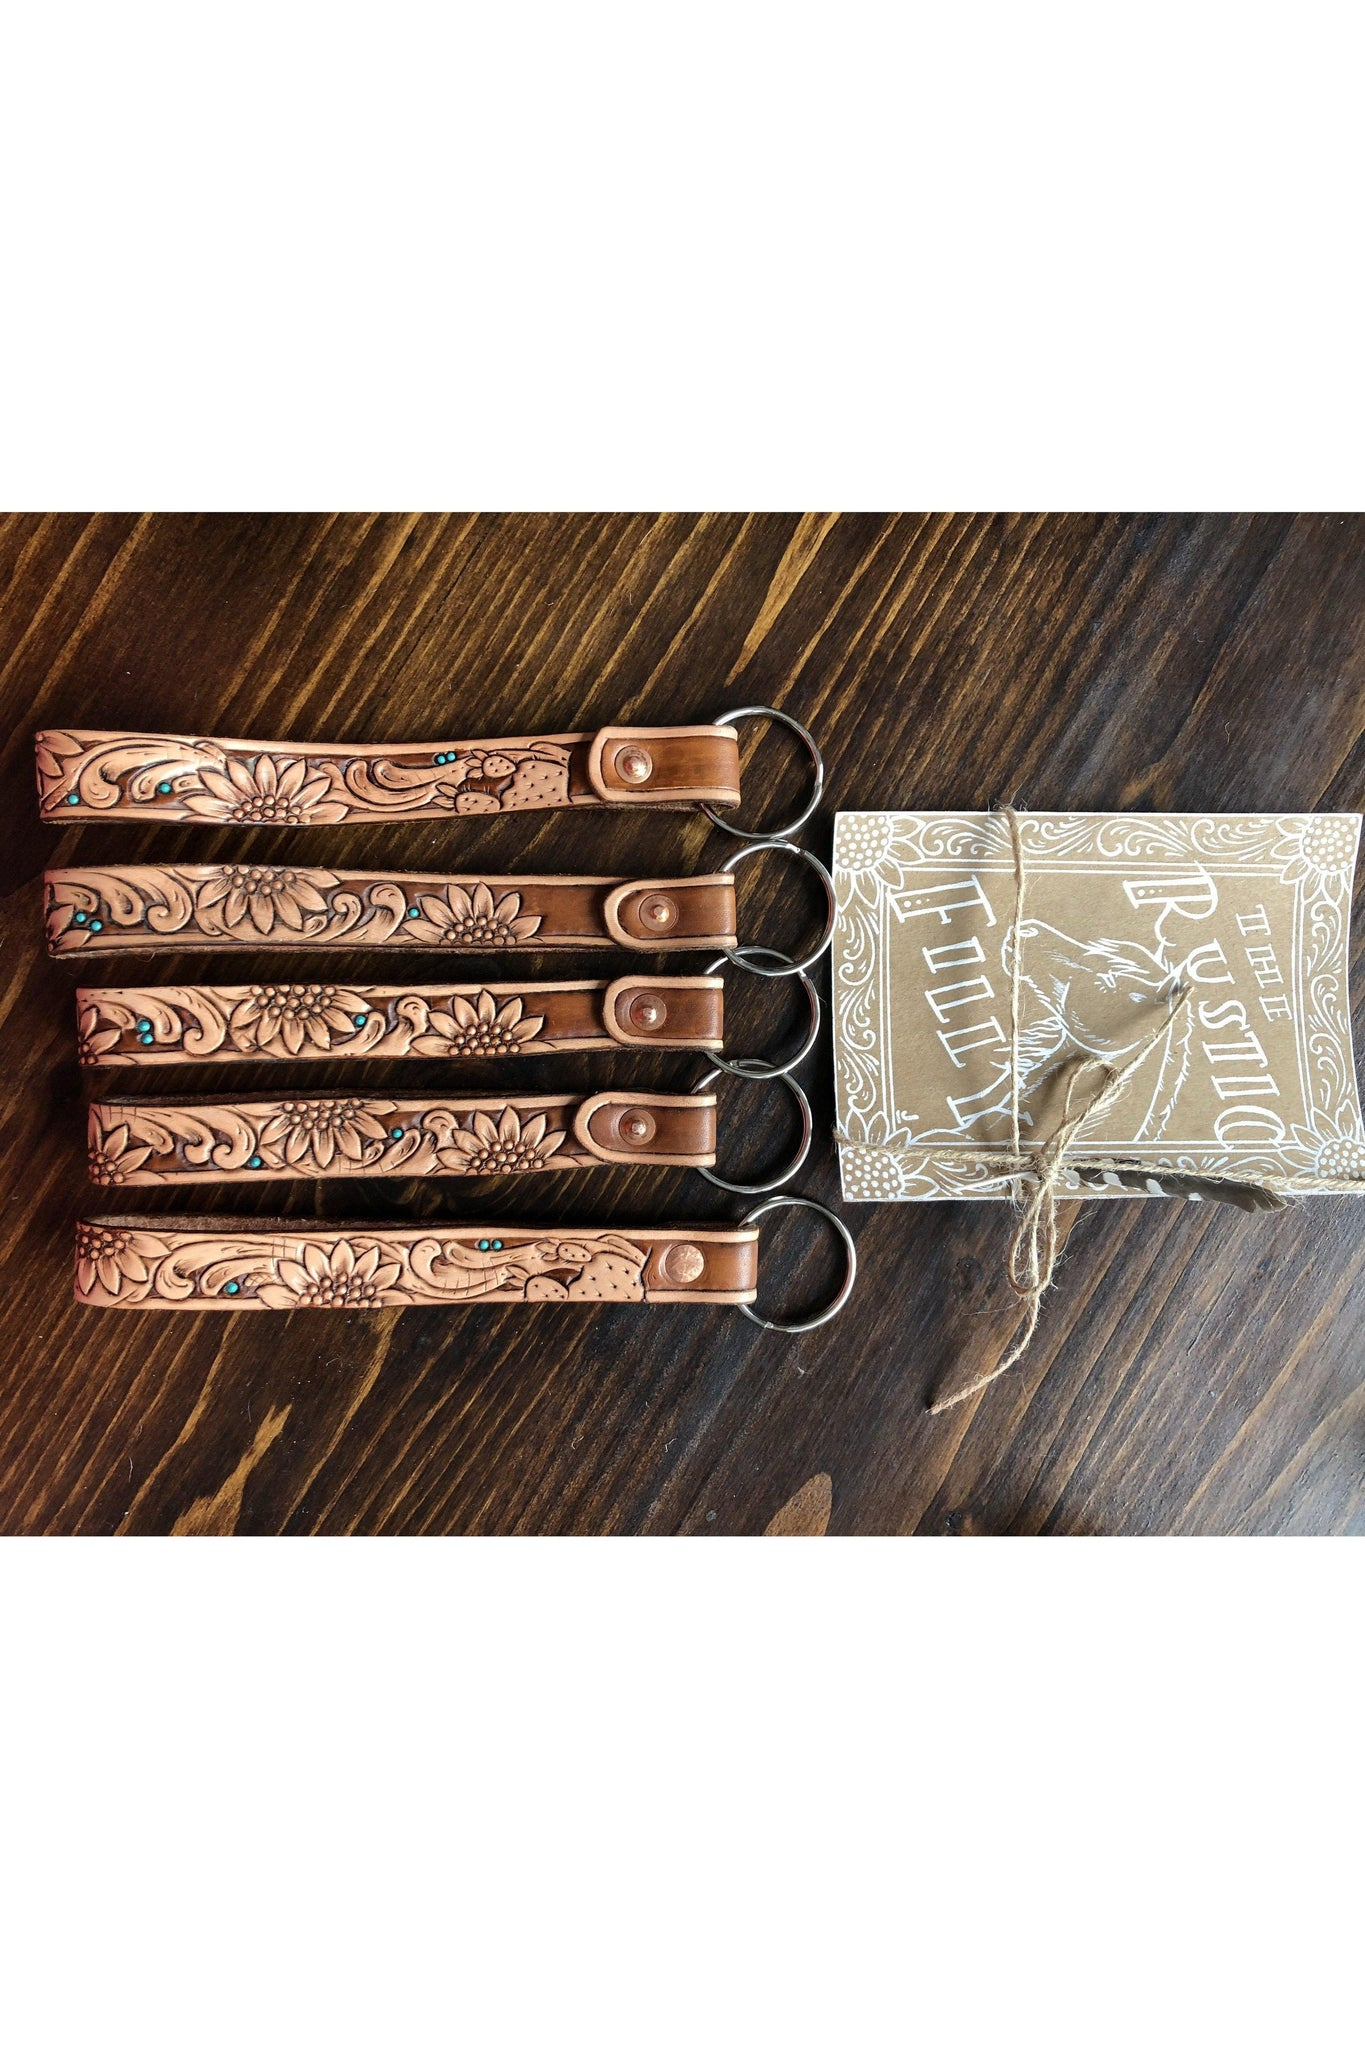 Rustic Filly Wristlet